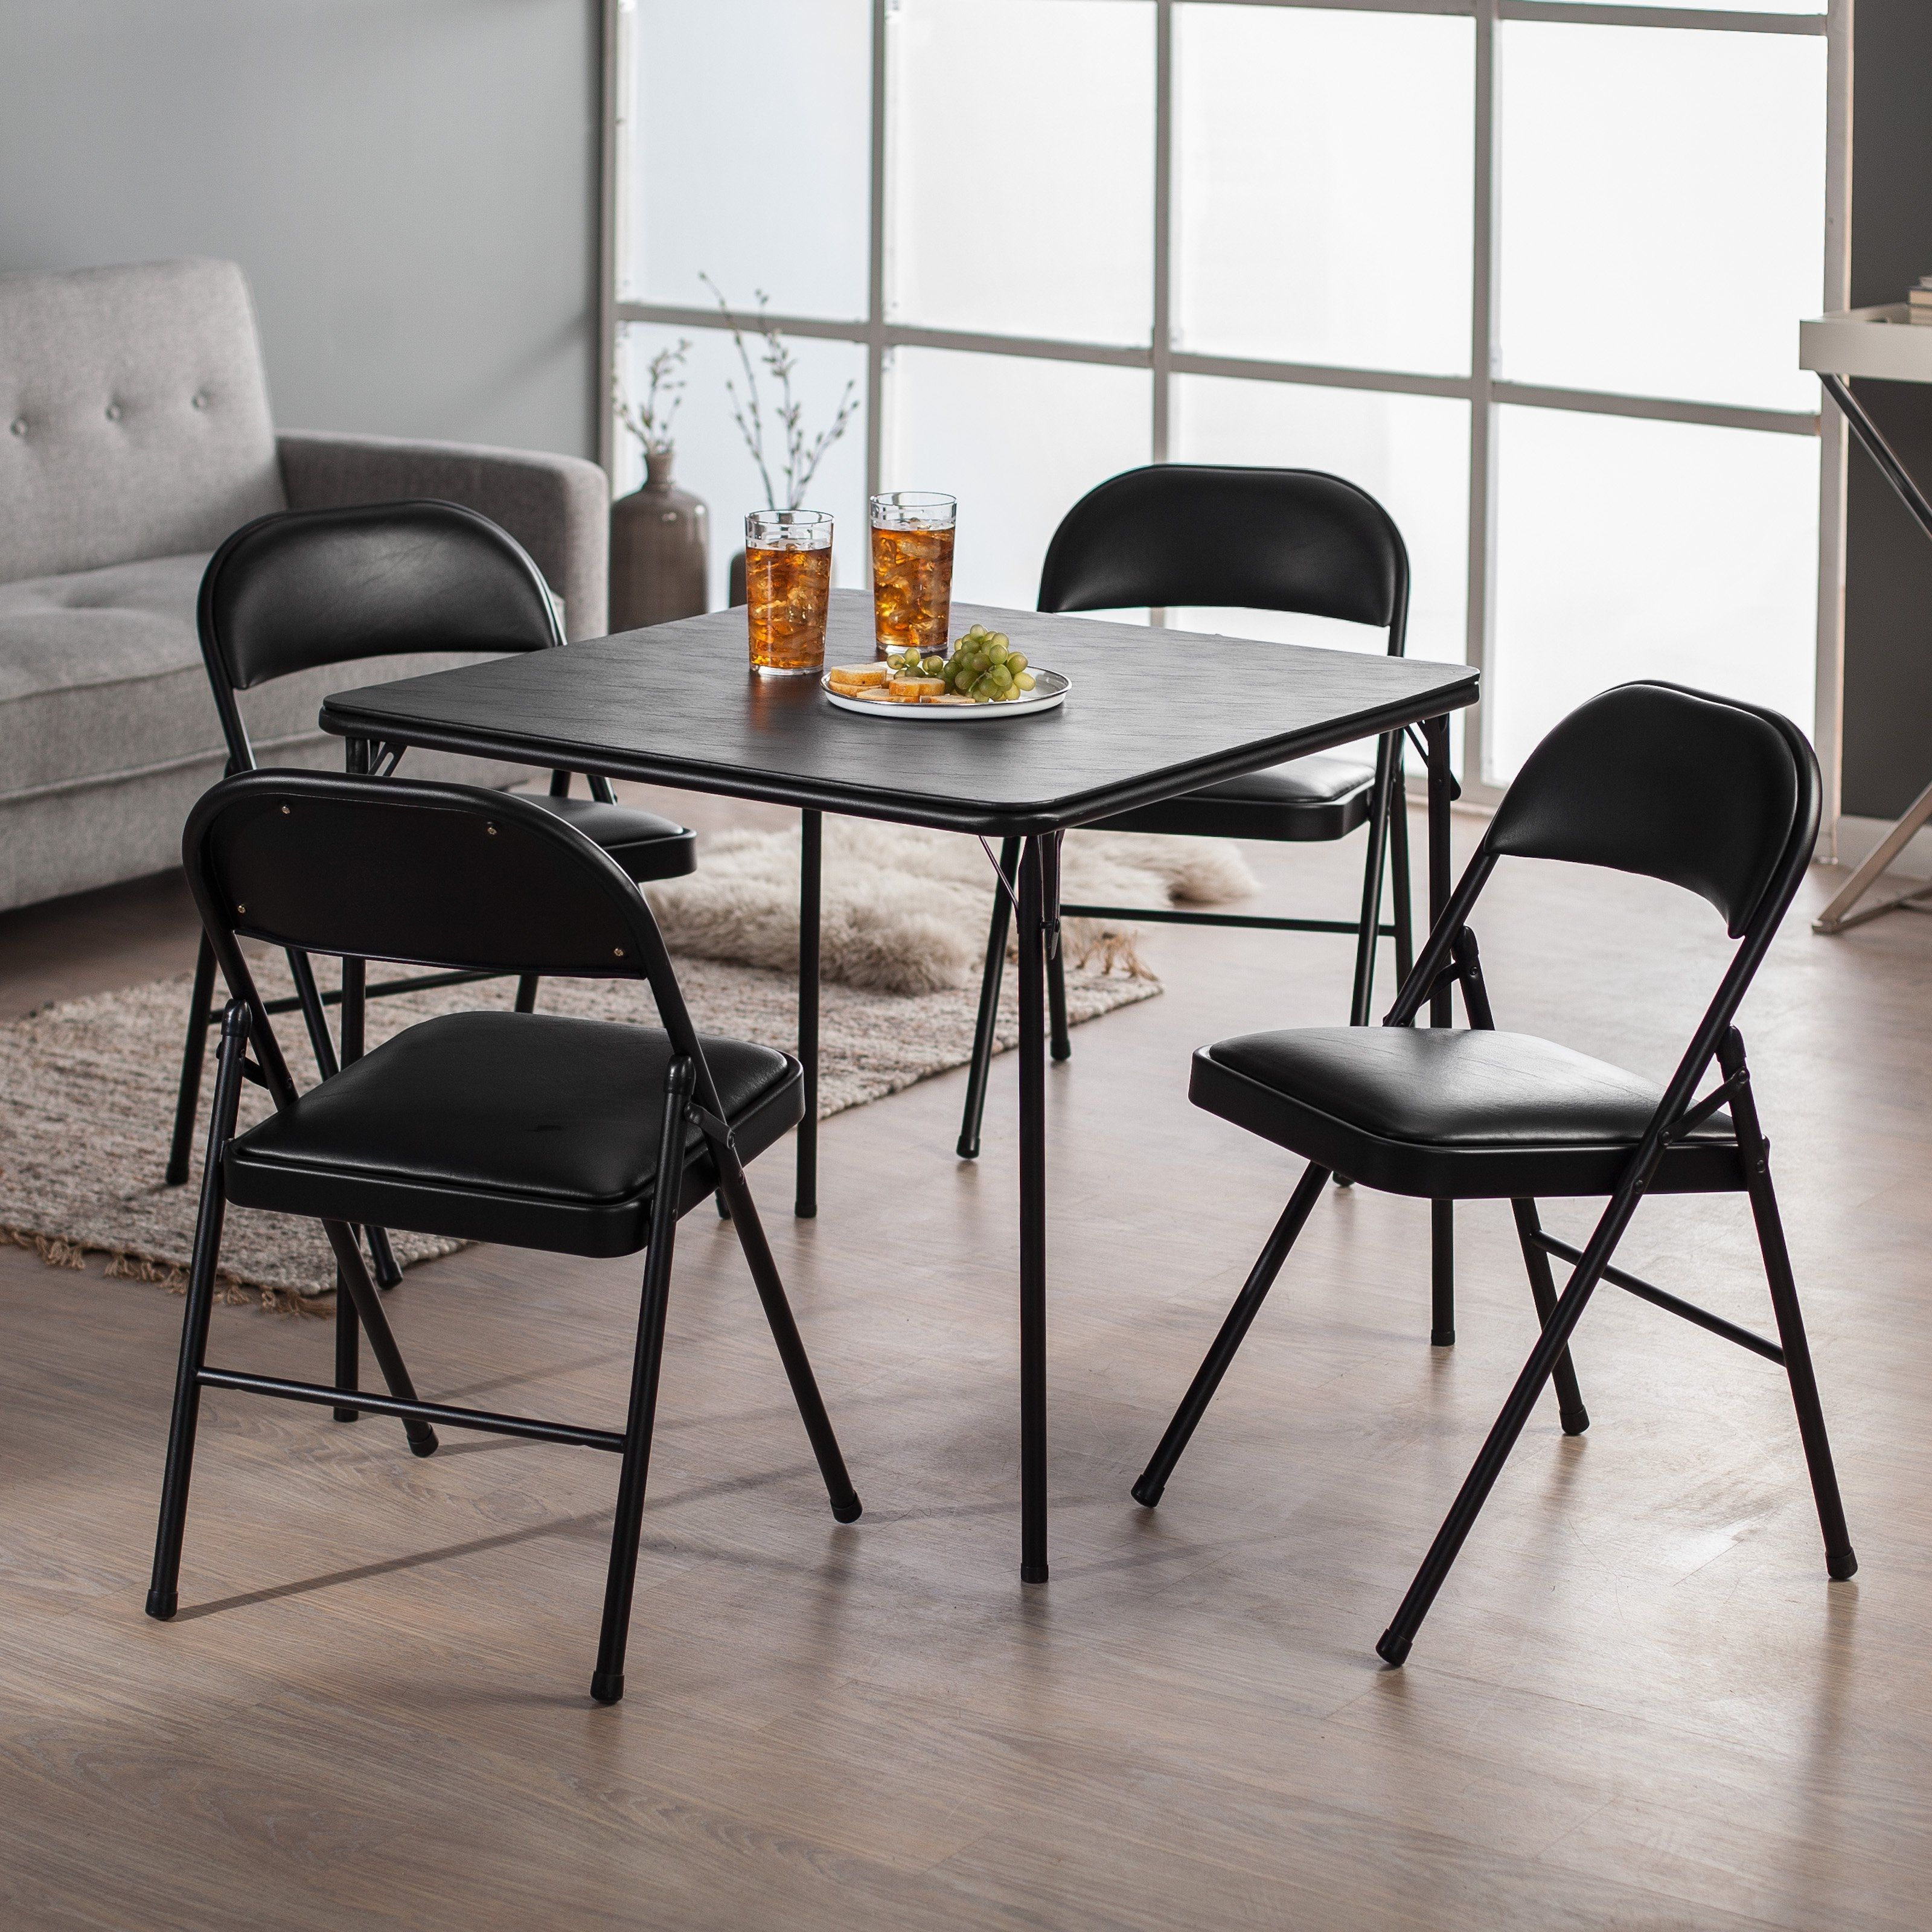 Sears Card Table And Chairs Sets Http Lachpage Com Pinterest # Muebles Sears Monterrey